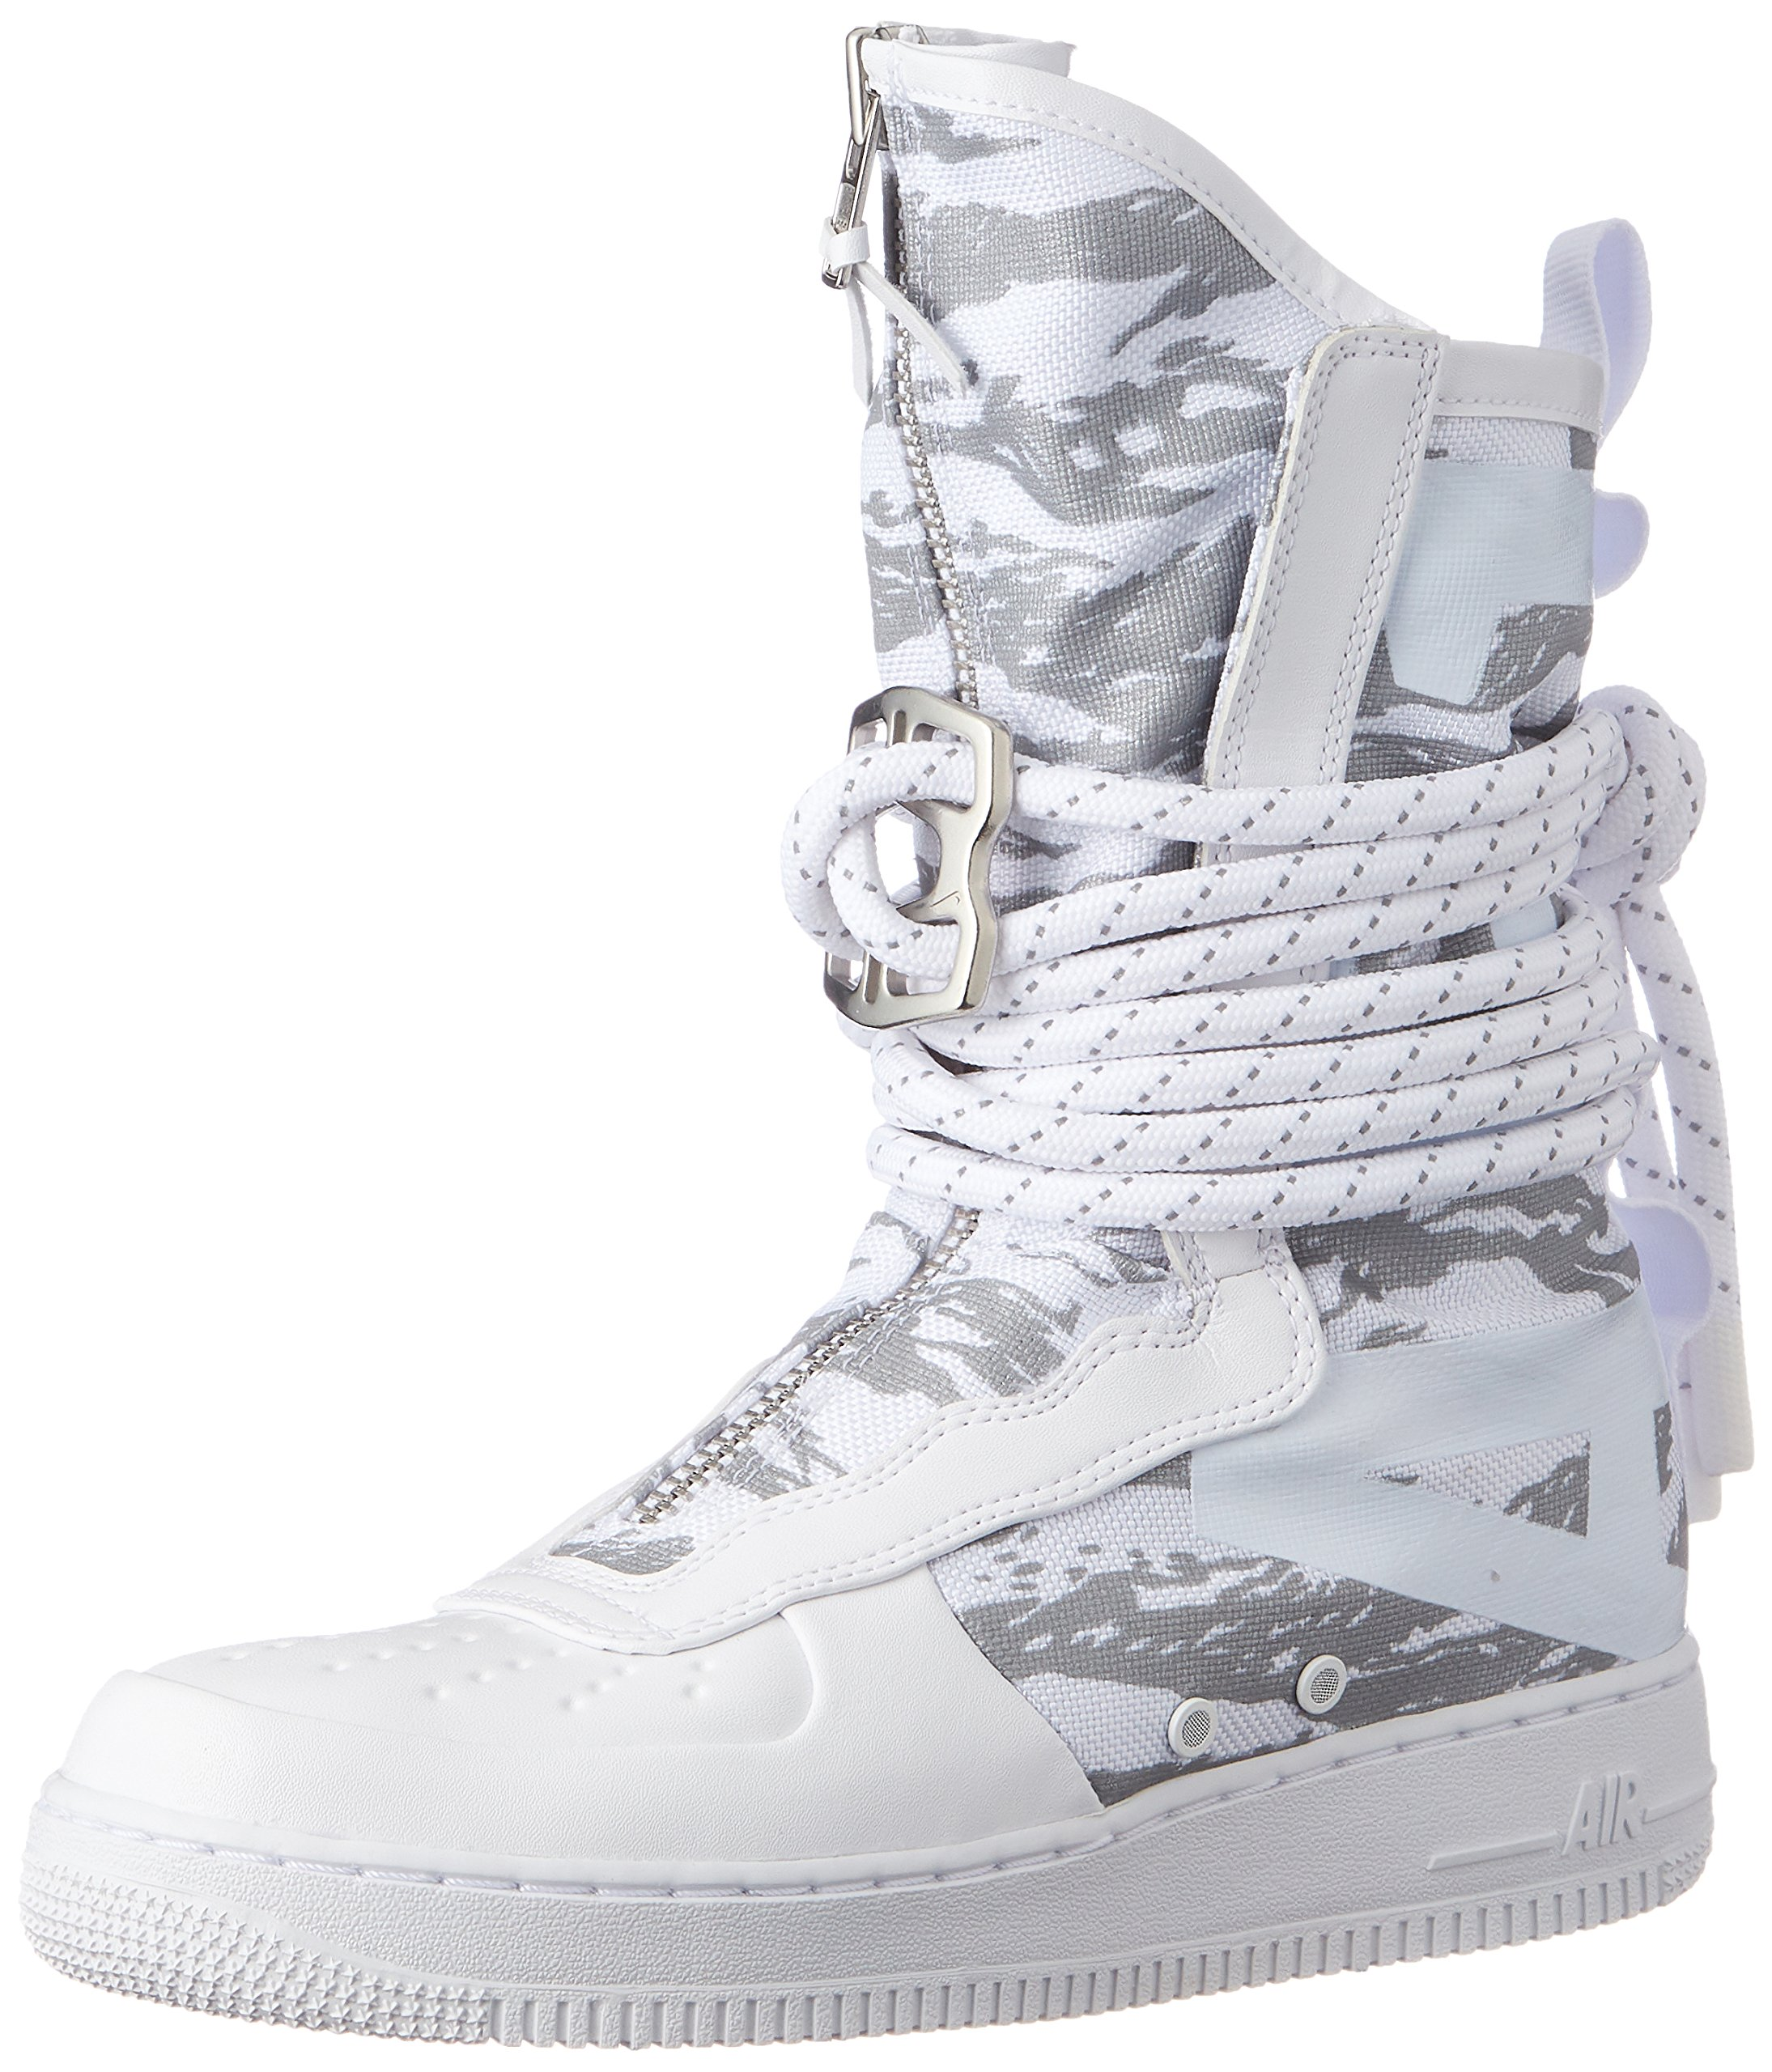 NIKE SF Air Force 1 High Top Premium Mens Boots WhiteWhiteWhite aa1130 100